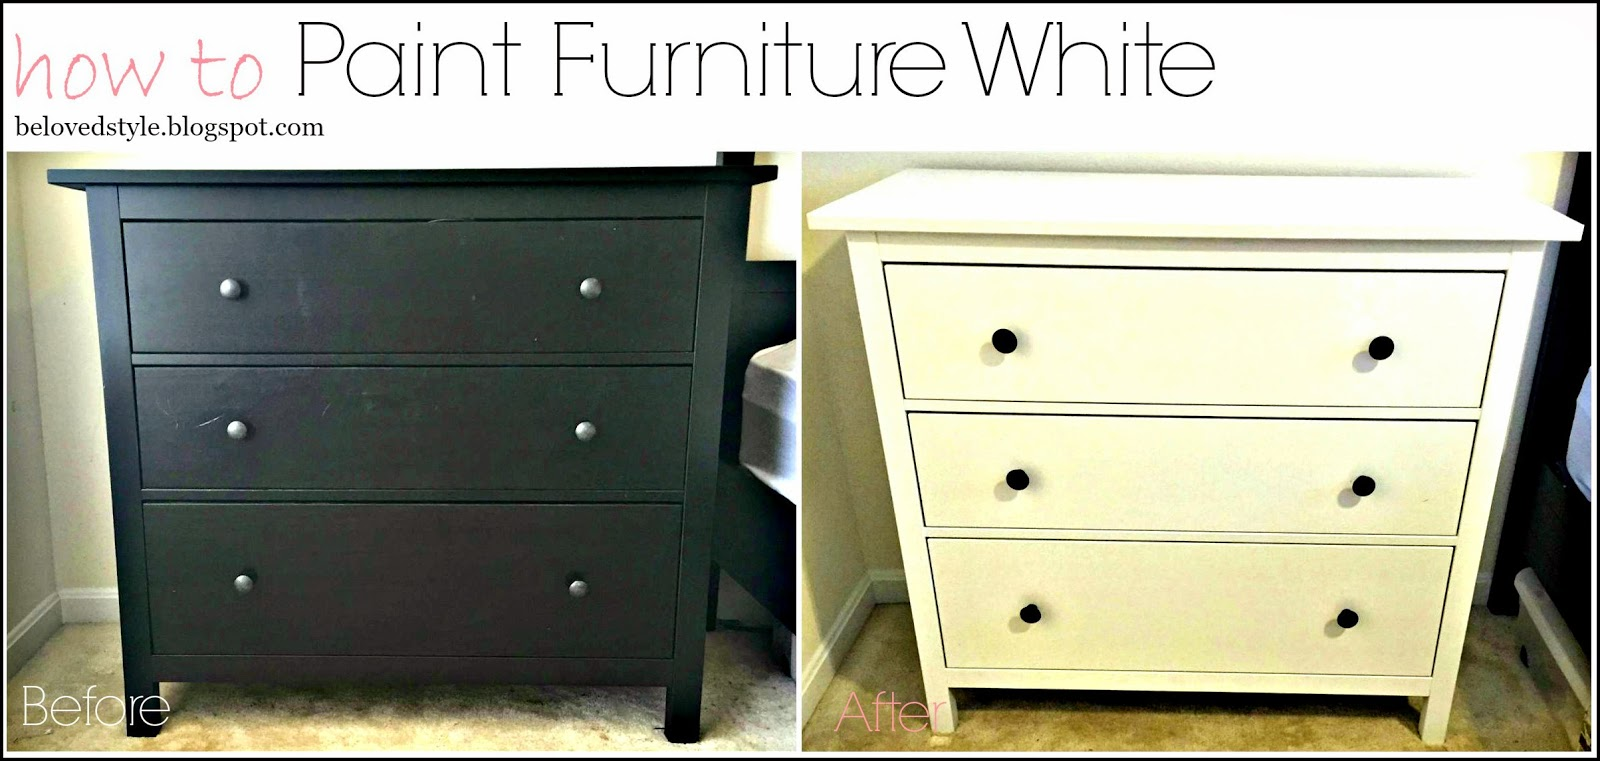 Beloved Style: How to Paint Furniture White